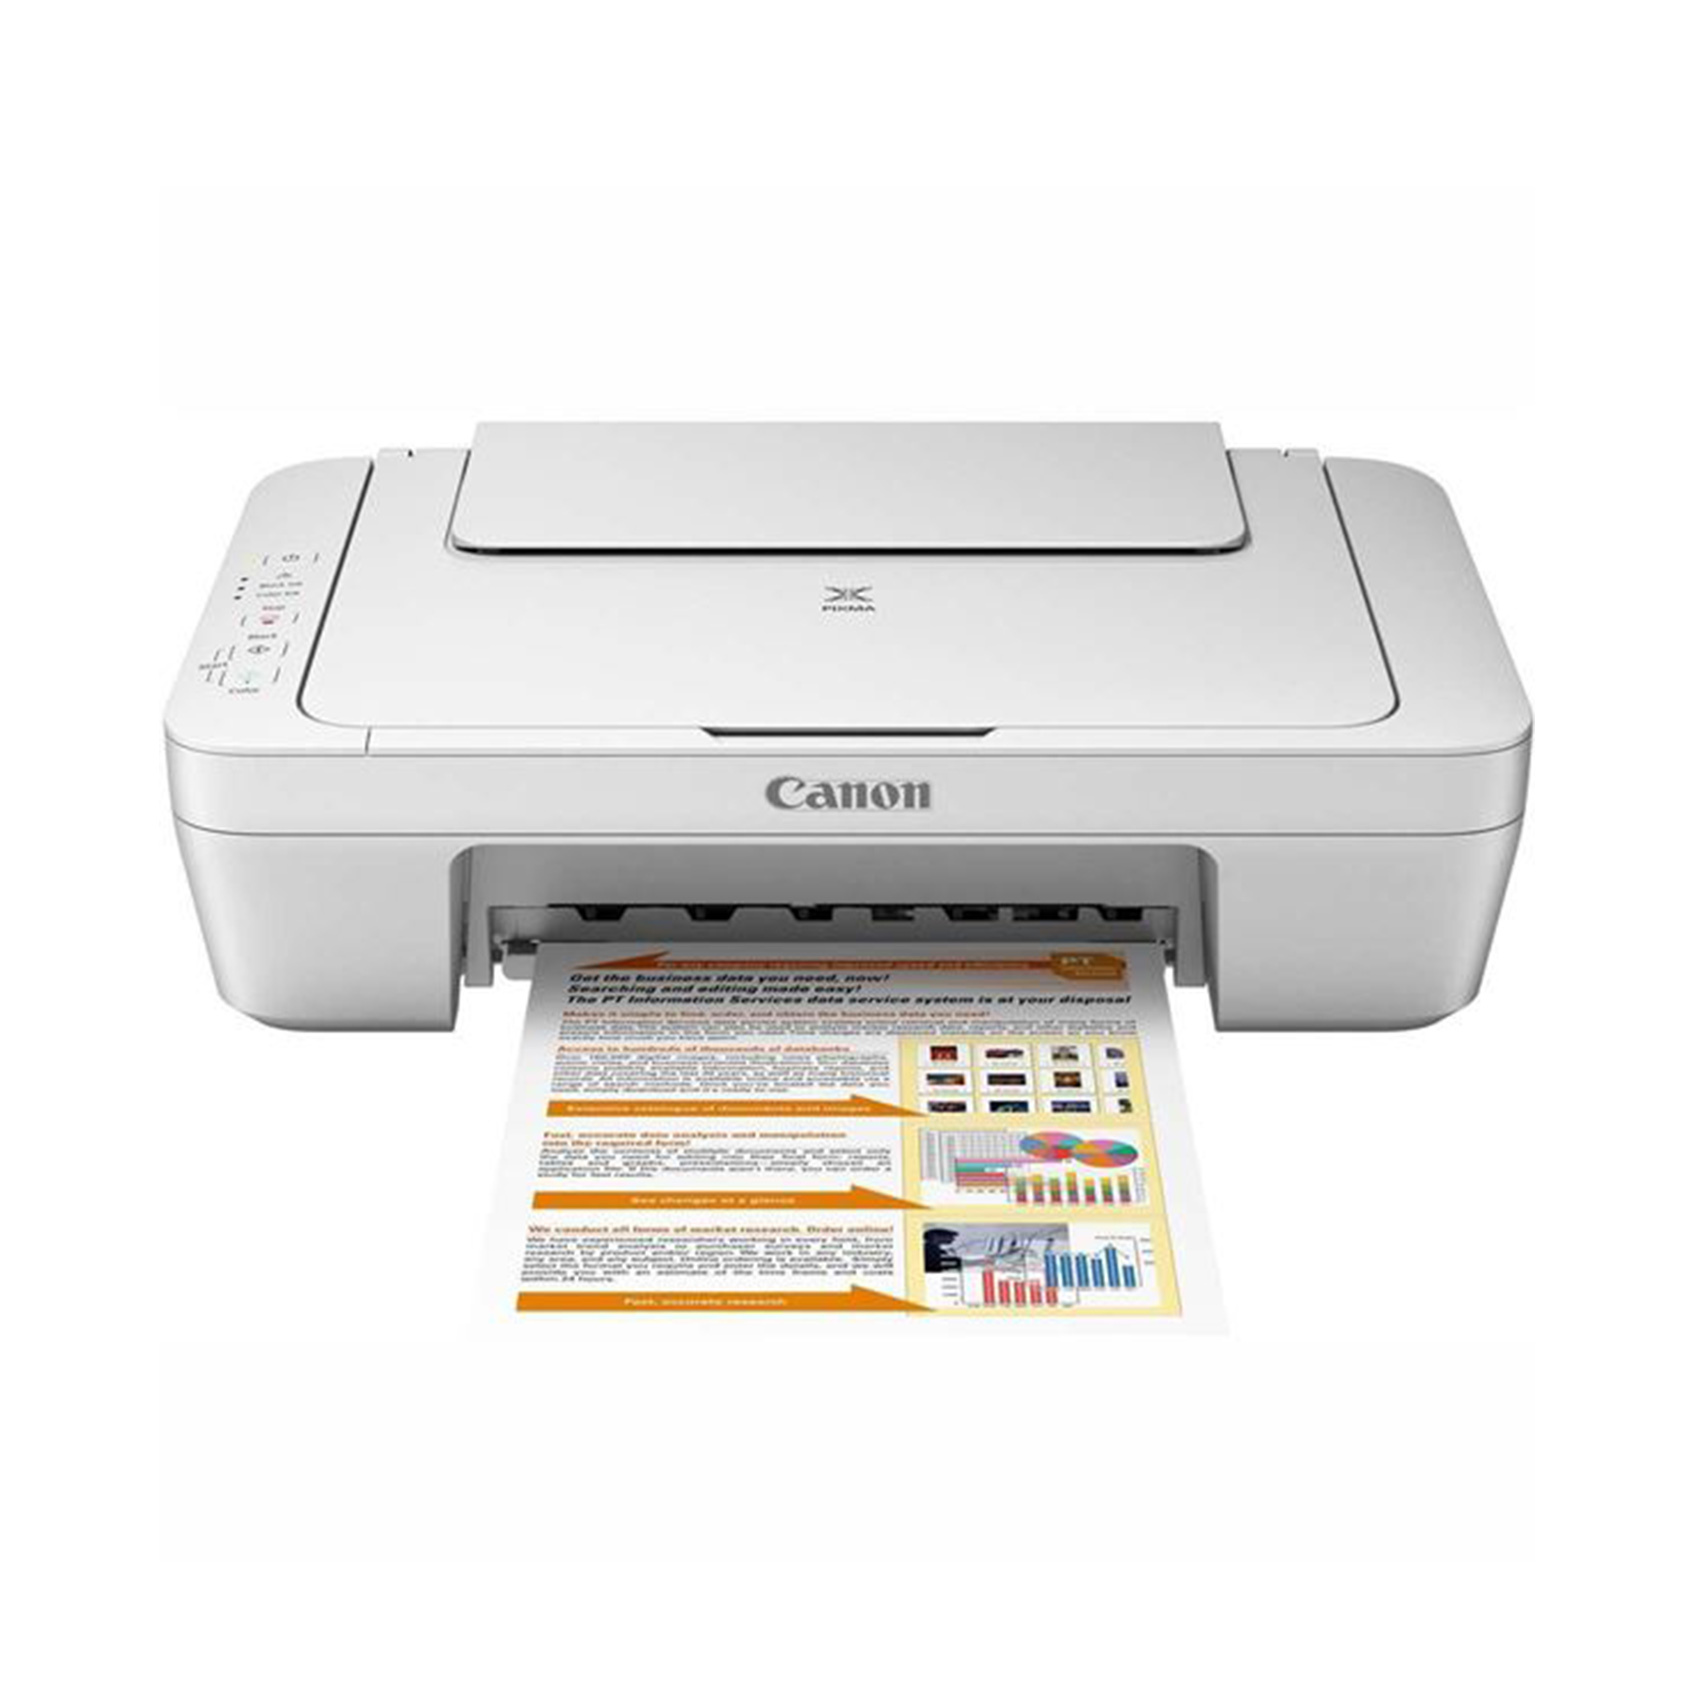 PRINTER MG2540 CANON (INKJET,3IN1)